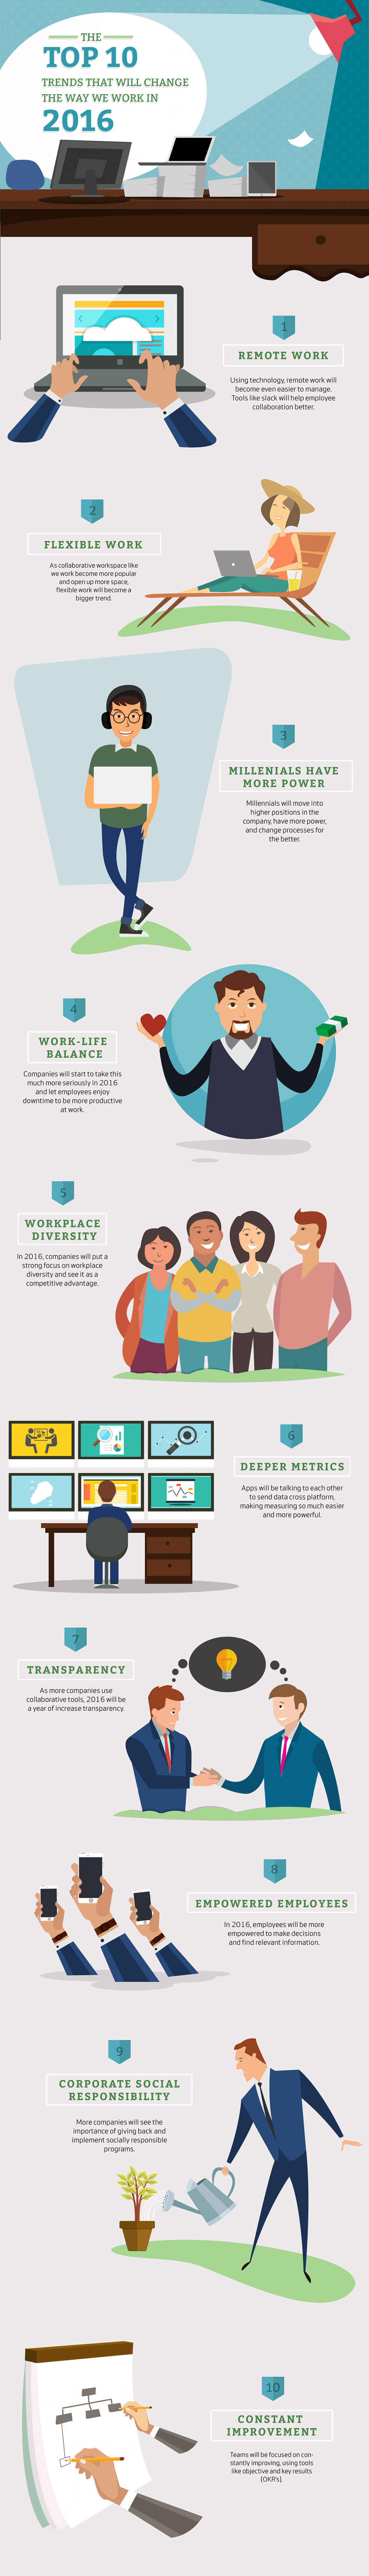 Top 10 Trends That will Change the way we Work in 2016 Infographic